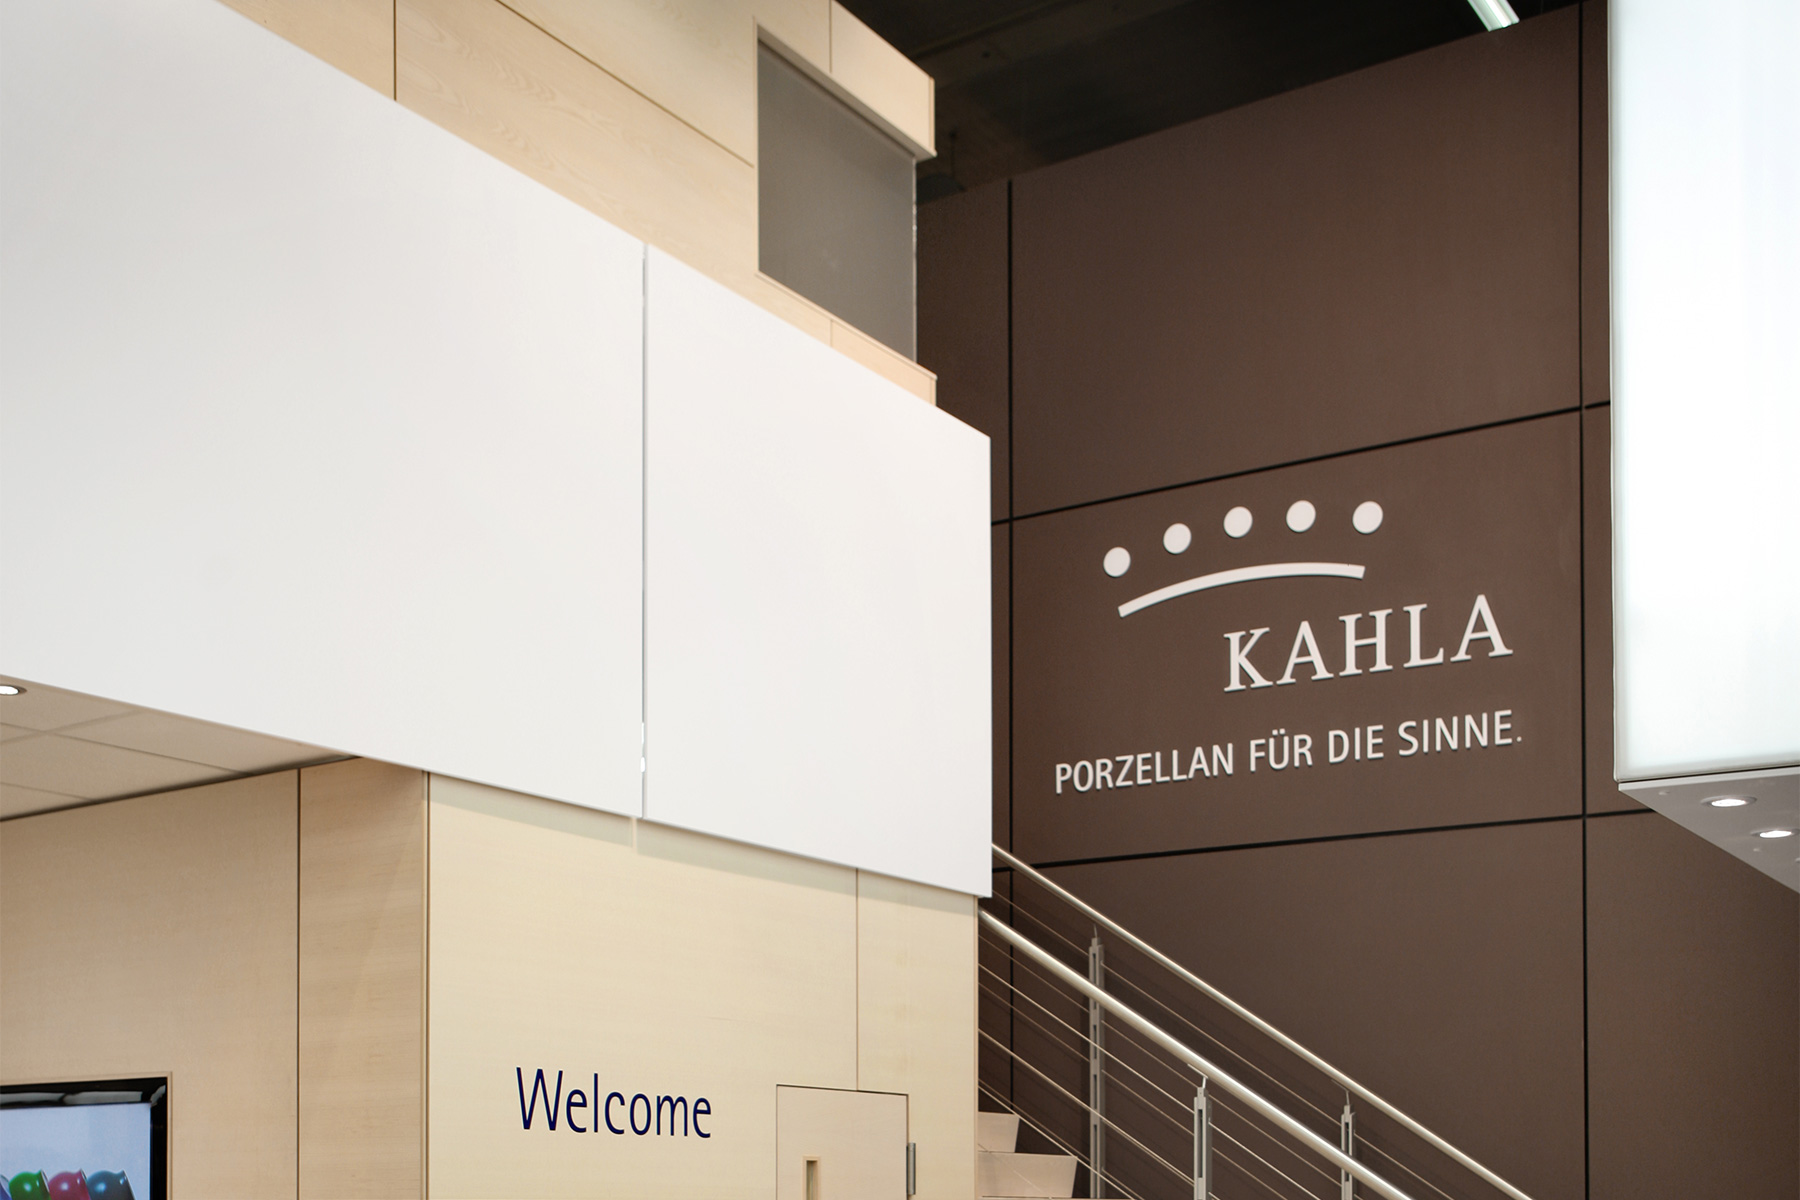 Kahla Porzellan / Exhibition Design